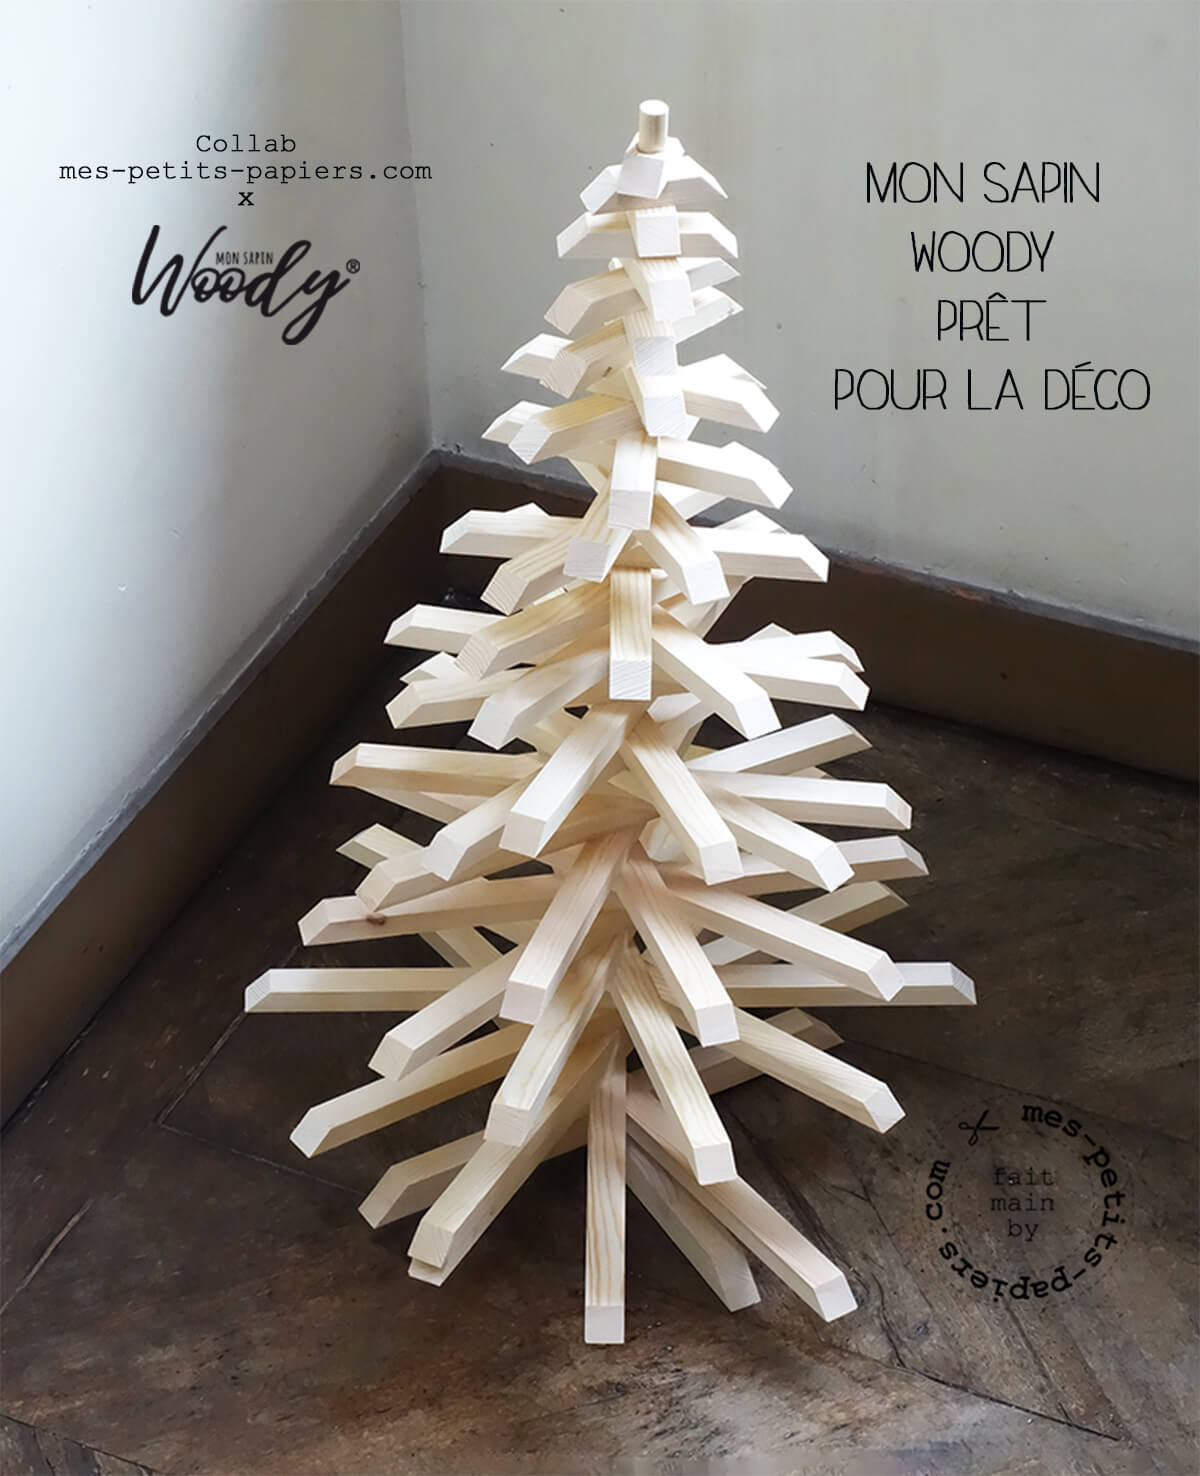 collab mes petits papiers pour mon sapin woody 1